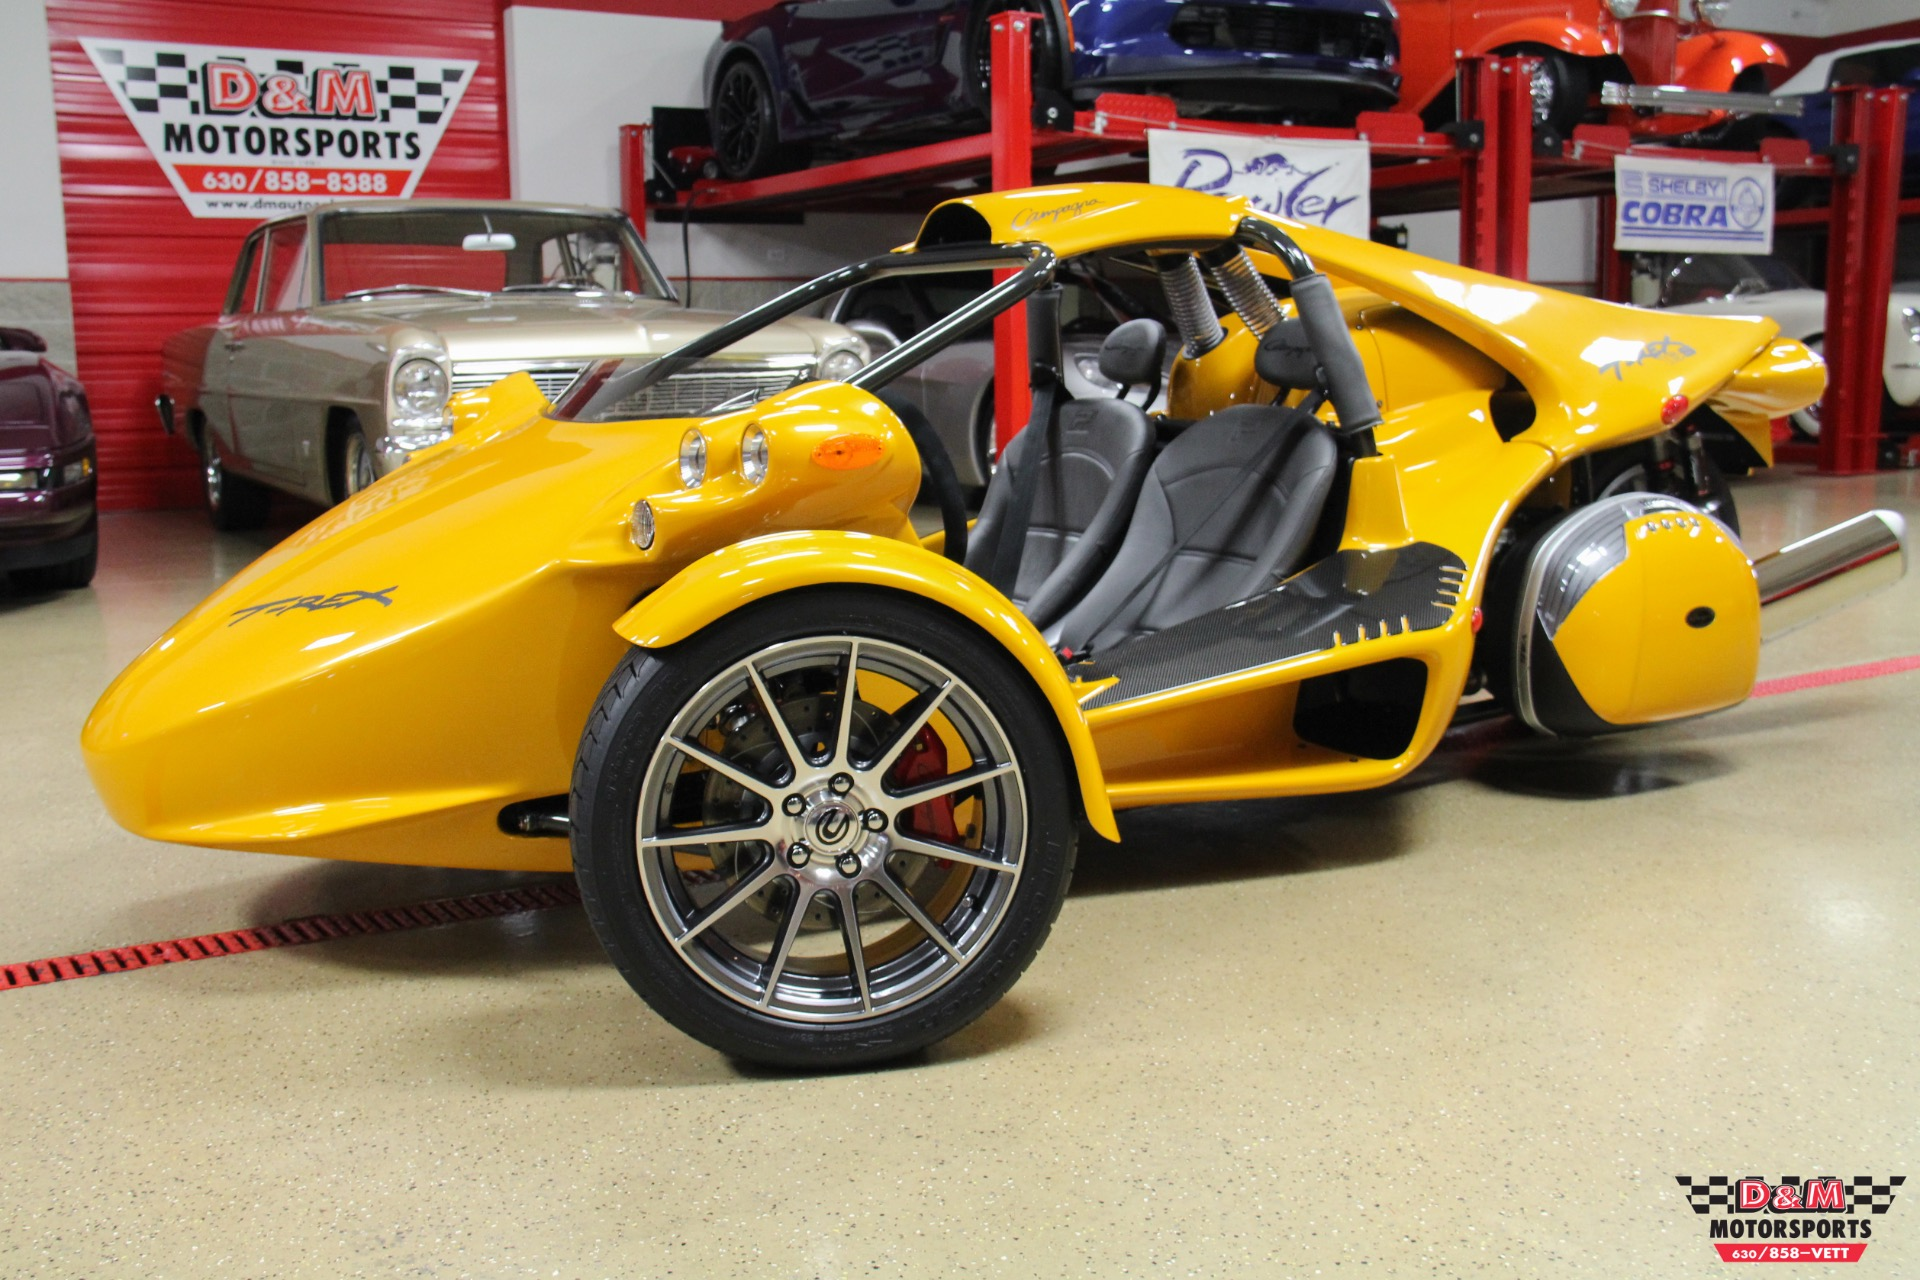 2016 campagna t rex 16sp stock m6146 for sale near glen. Black Bedroom Furniture Sets. Home Design Ideas